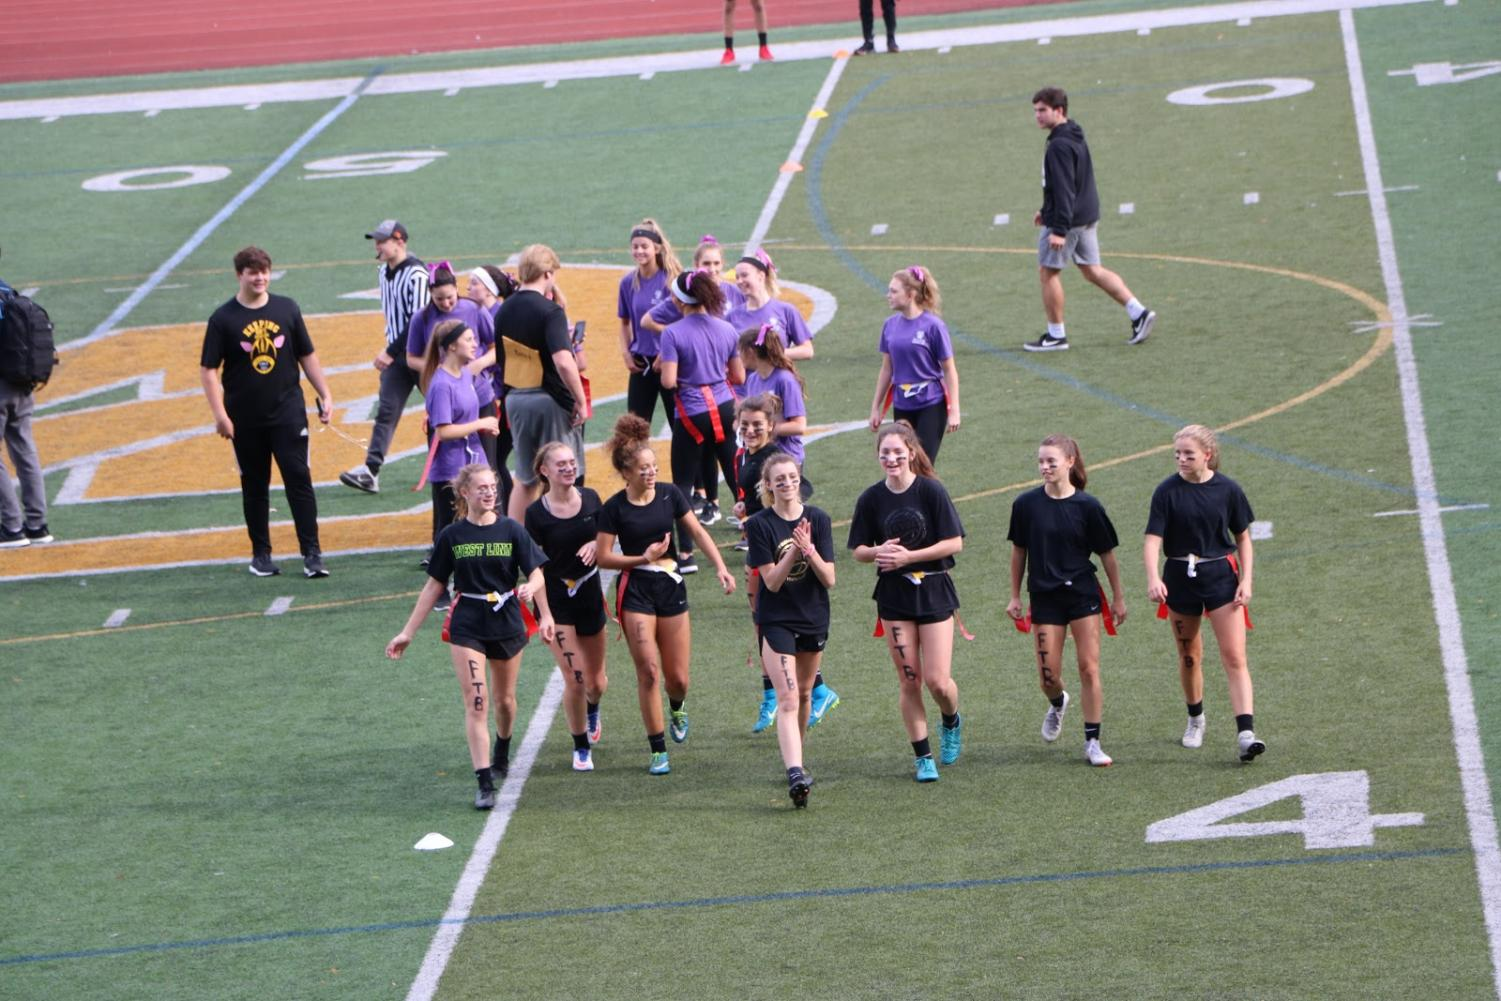 Reigning+victorious%2C+team+Black+jogs+off+the+field.